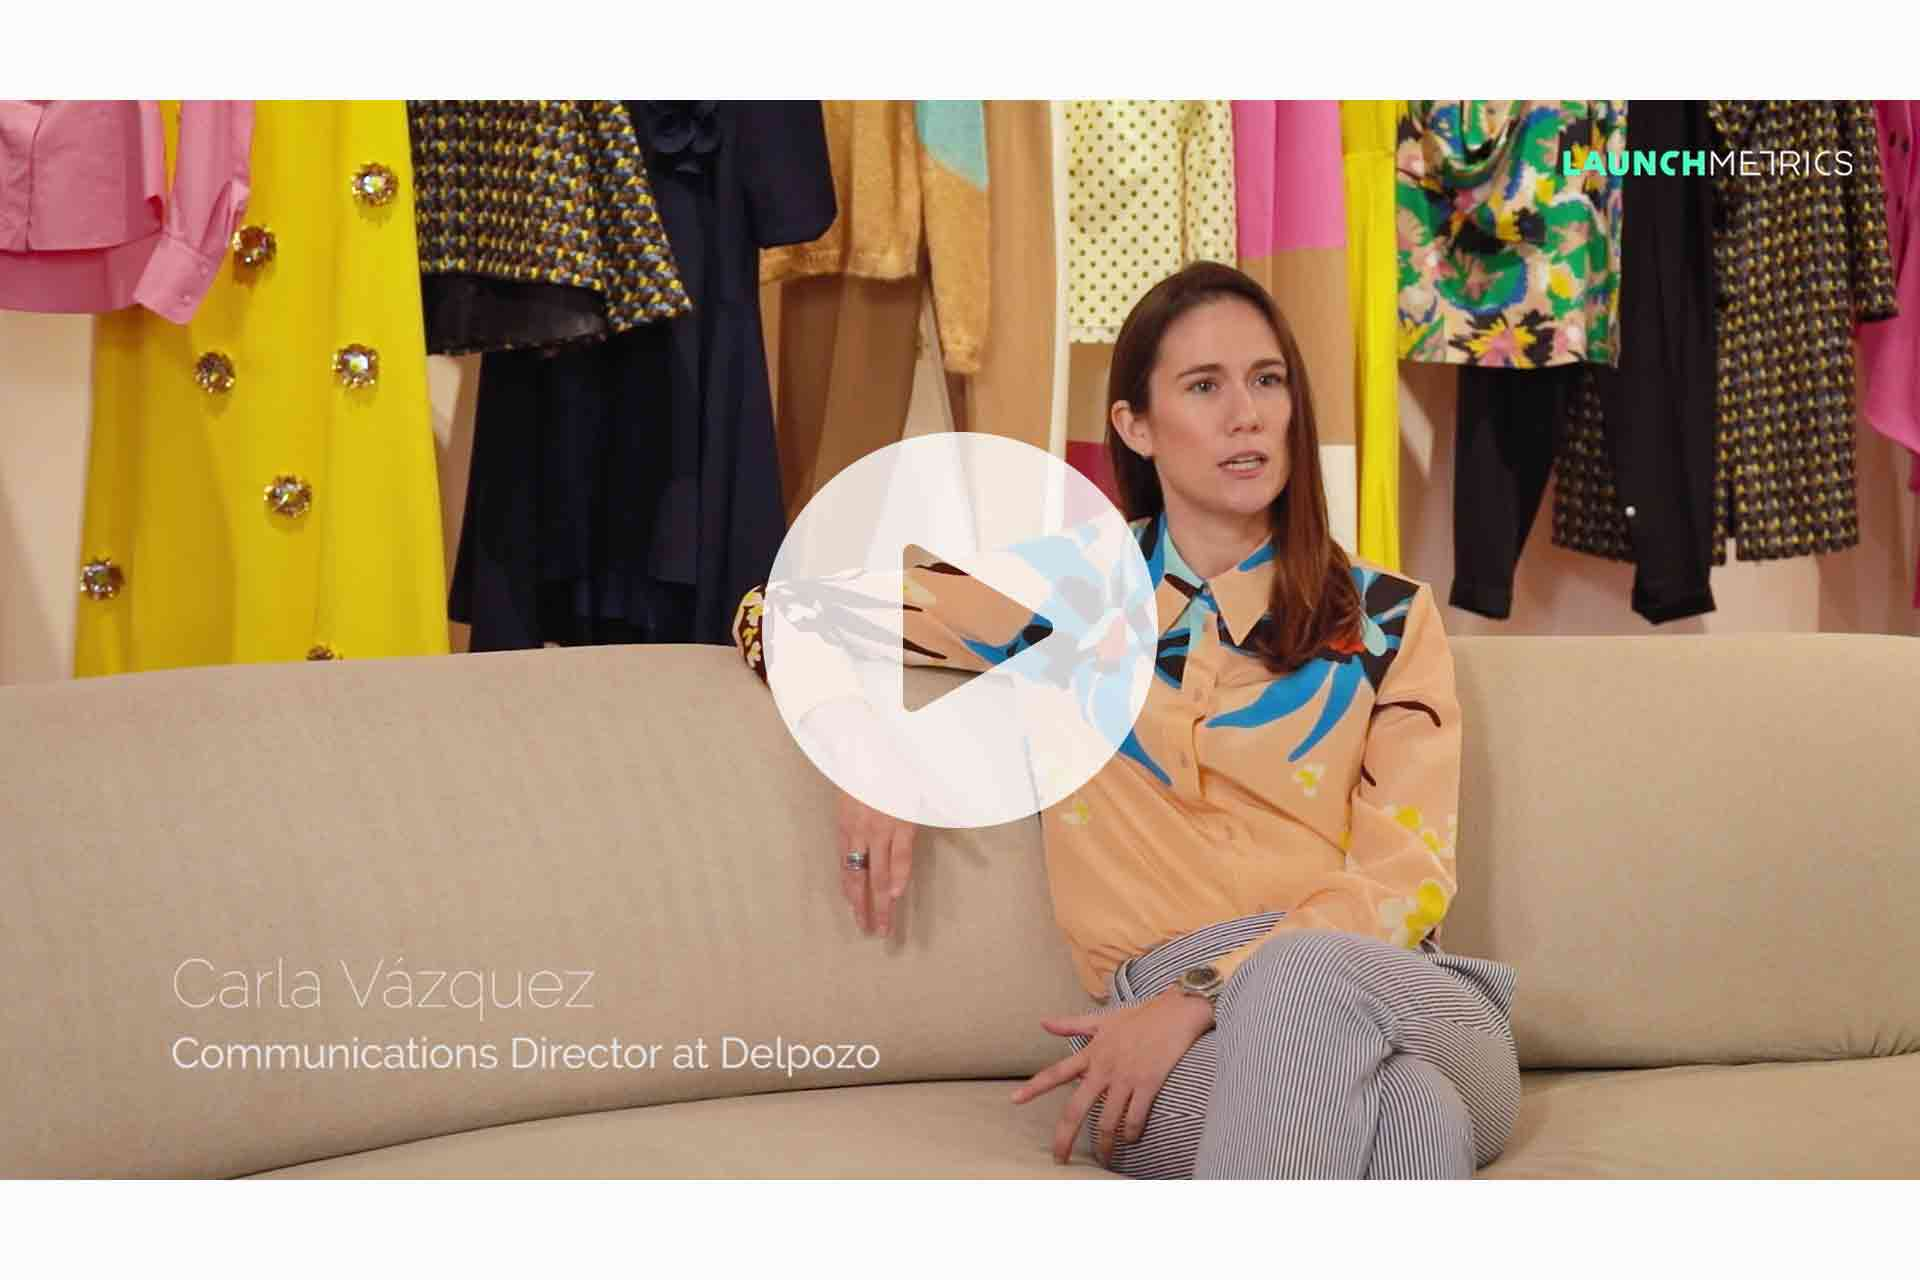 Launchmetrics interviews Carla Vázquez, communication director at Del Pozo, to discover how she uses her products to position herself in the market.